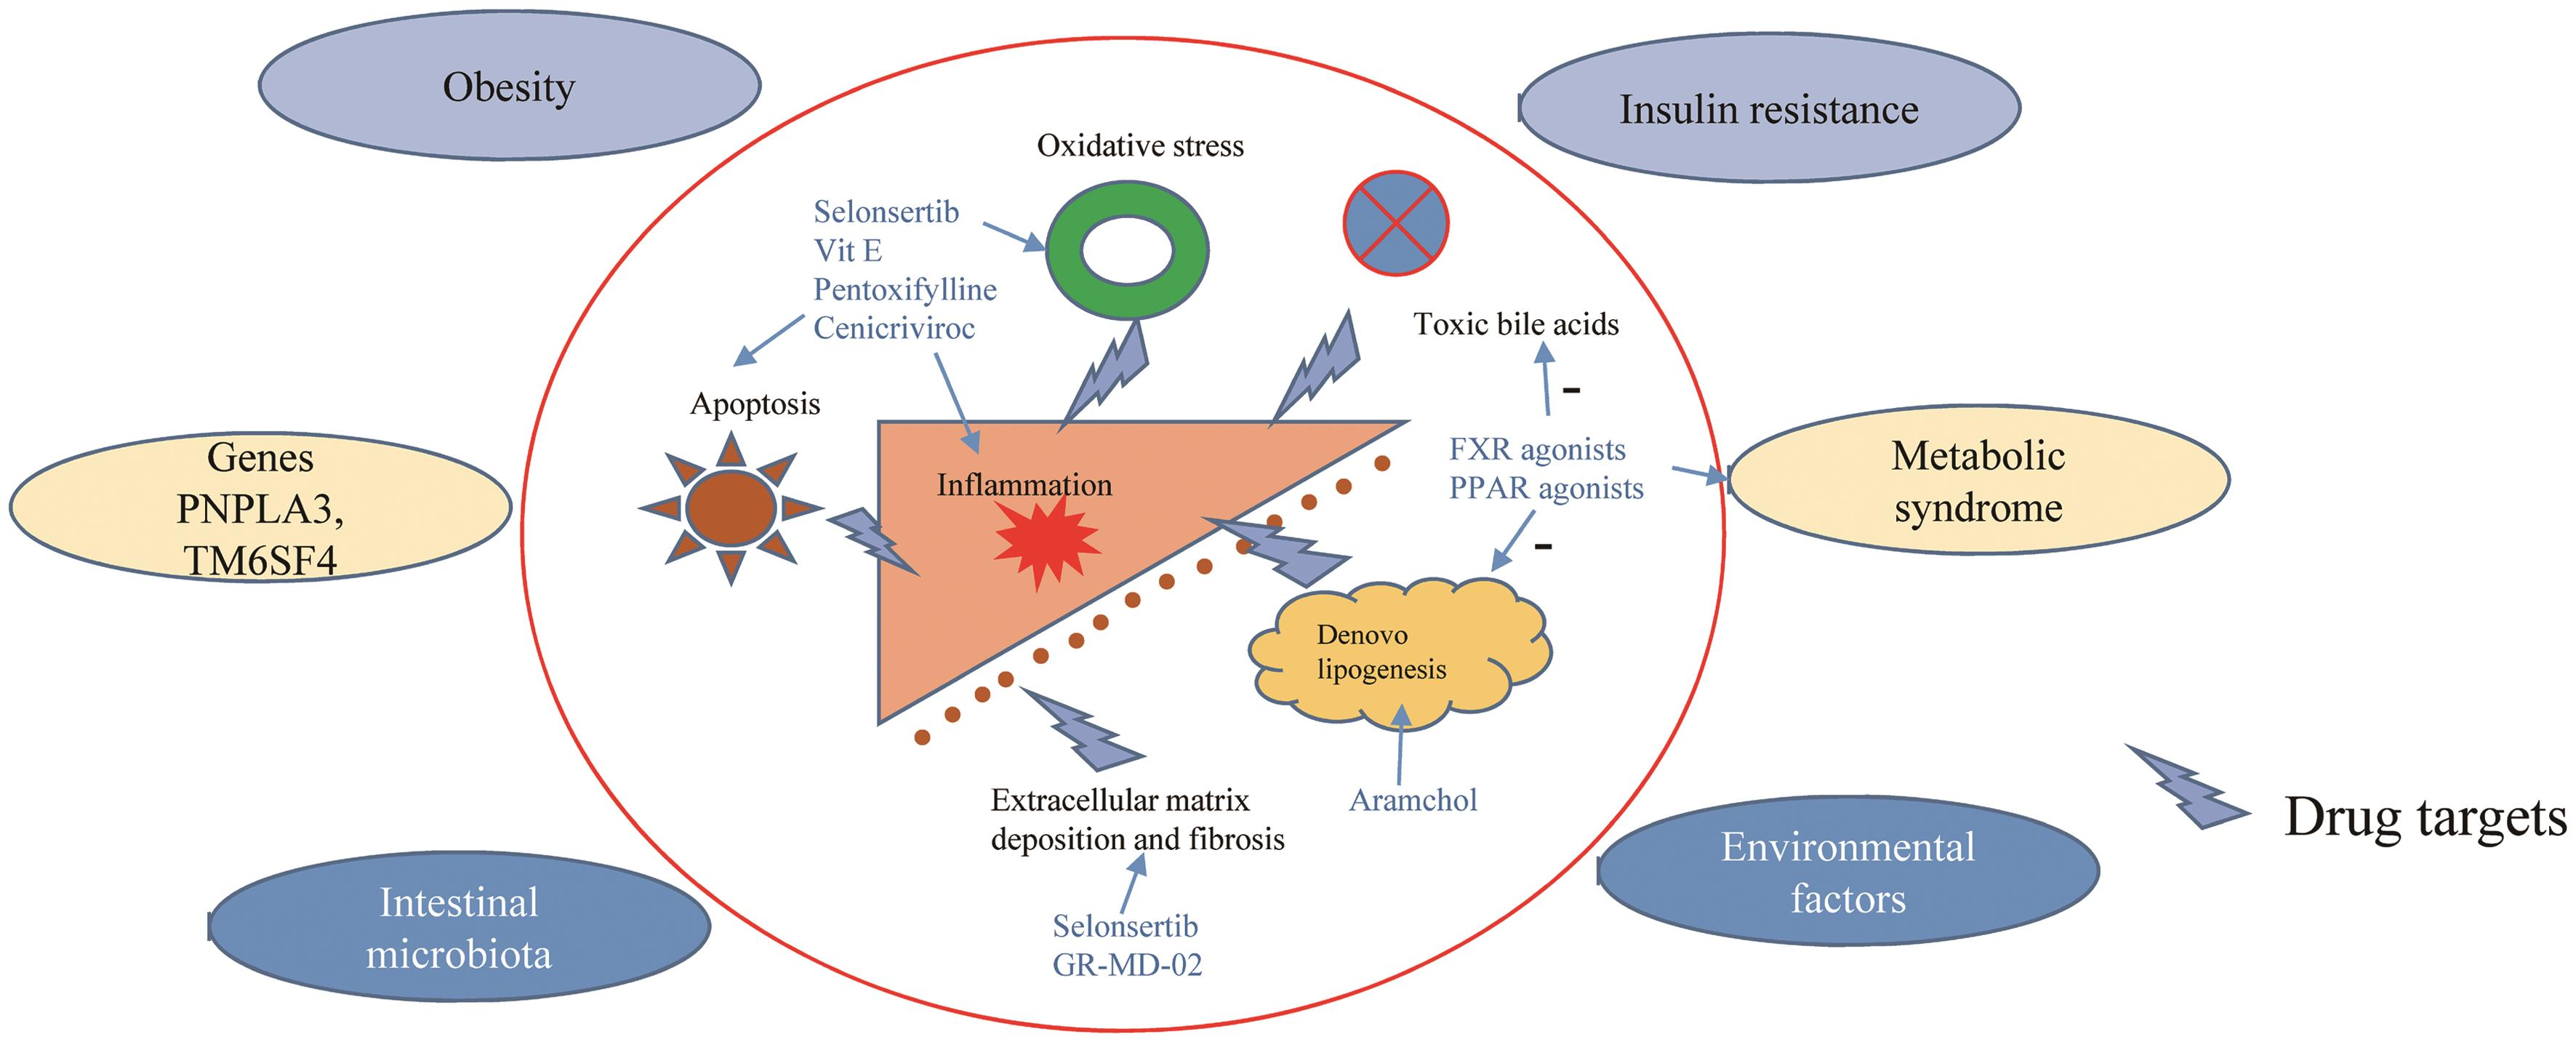 Factors implicated in the pathogenesis of NASH and possible drug targets.